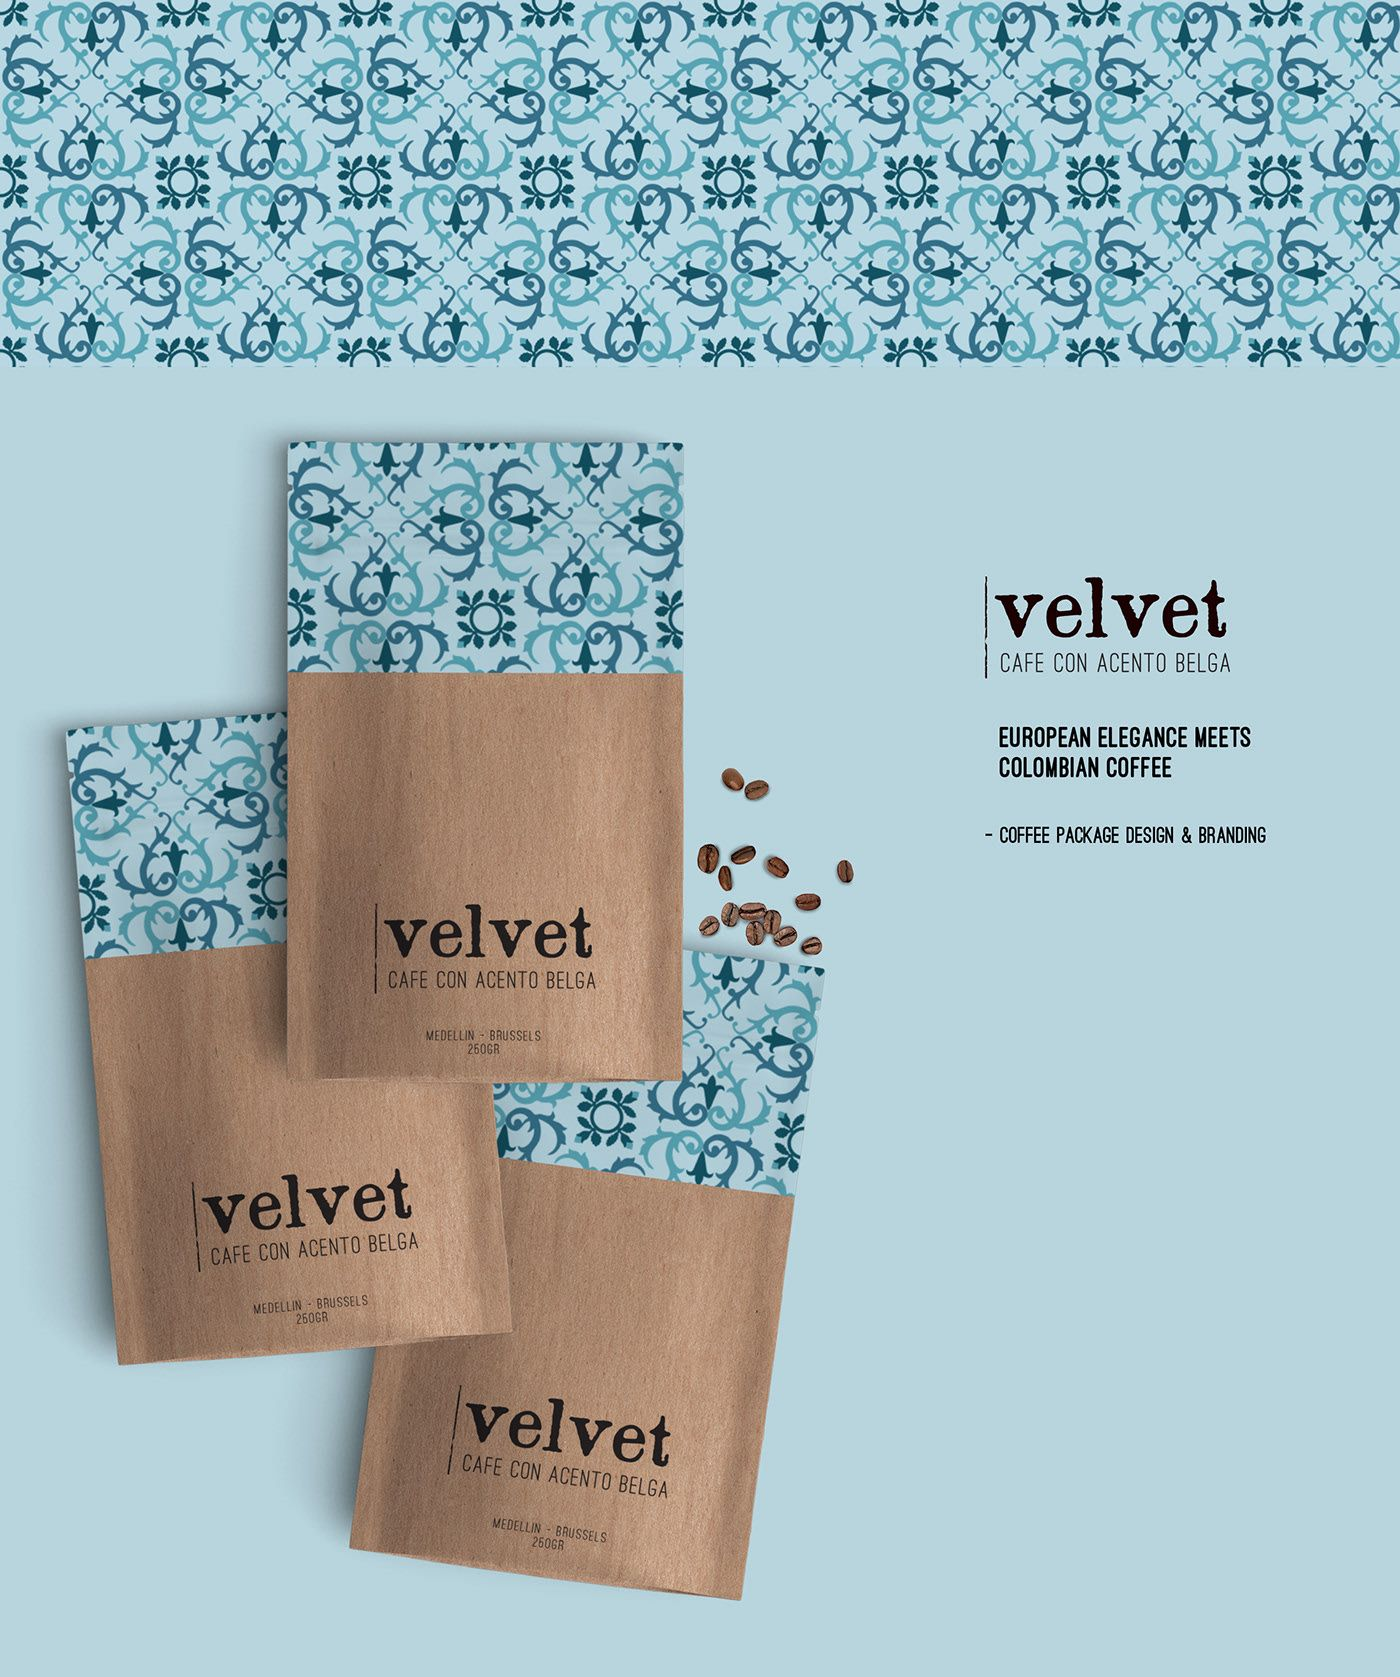 Velvet Coffee Bags Package Design & Branding on Behance #teapackaging